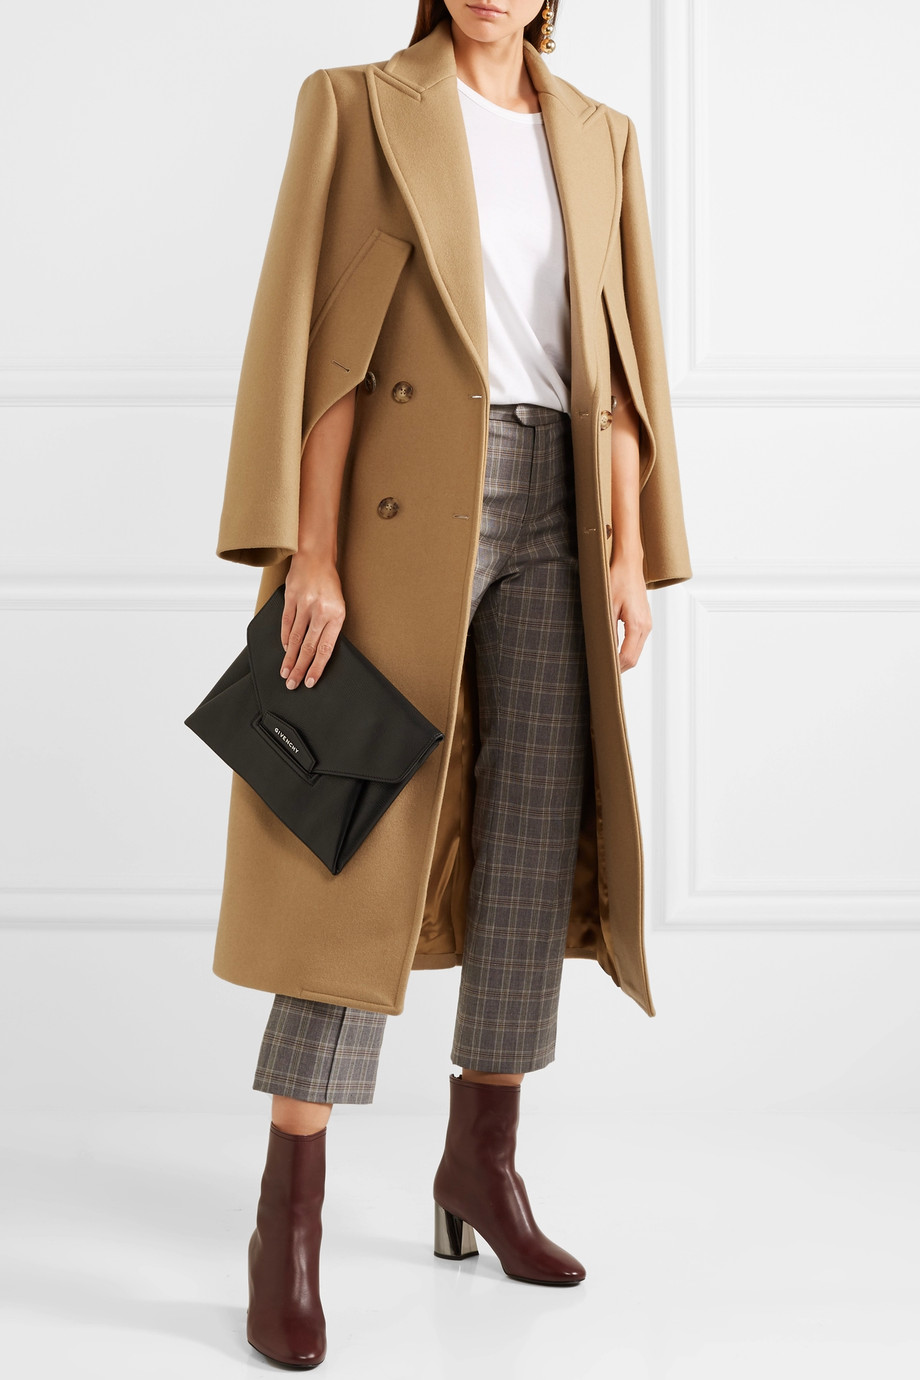 <a href='https://www.net-a-porter.com/hu/en/product/931517/michael_kors_collection/double-breasted-wool-coat' target='_blank' rel='noopener noreferrer'> Michael Kors Collection</a></p>